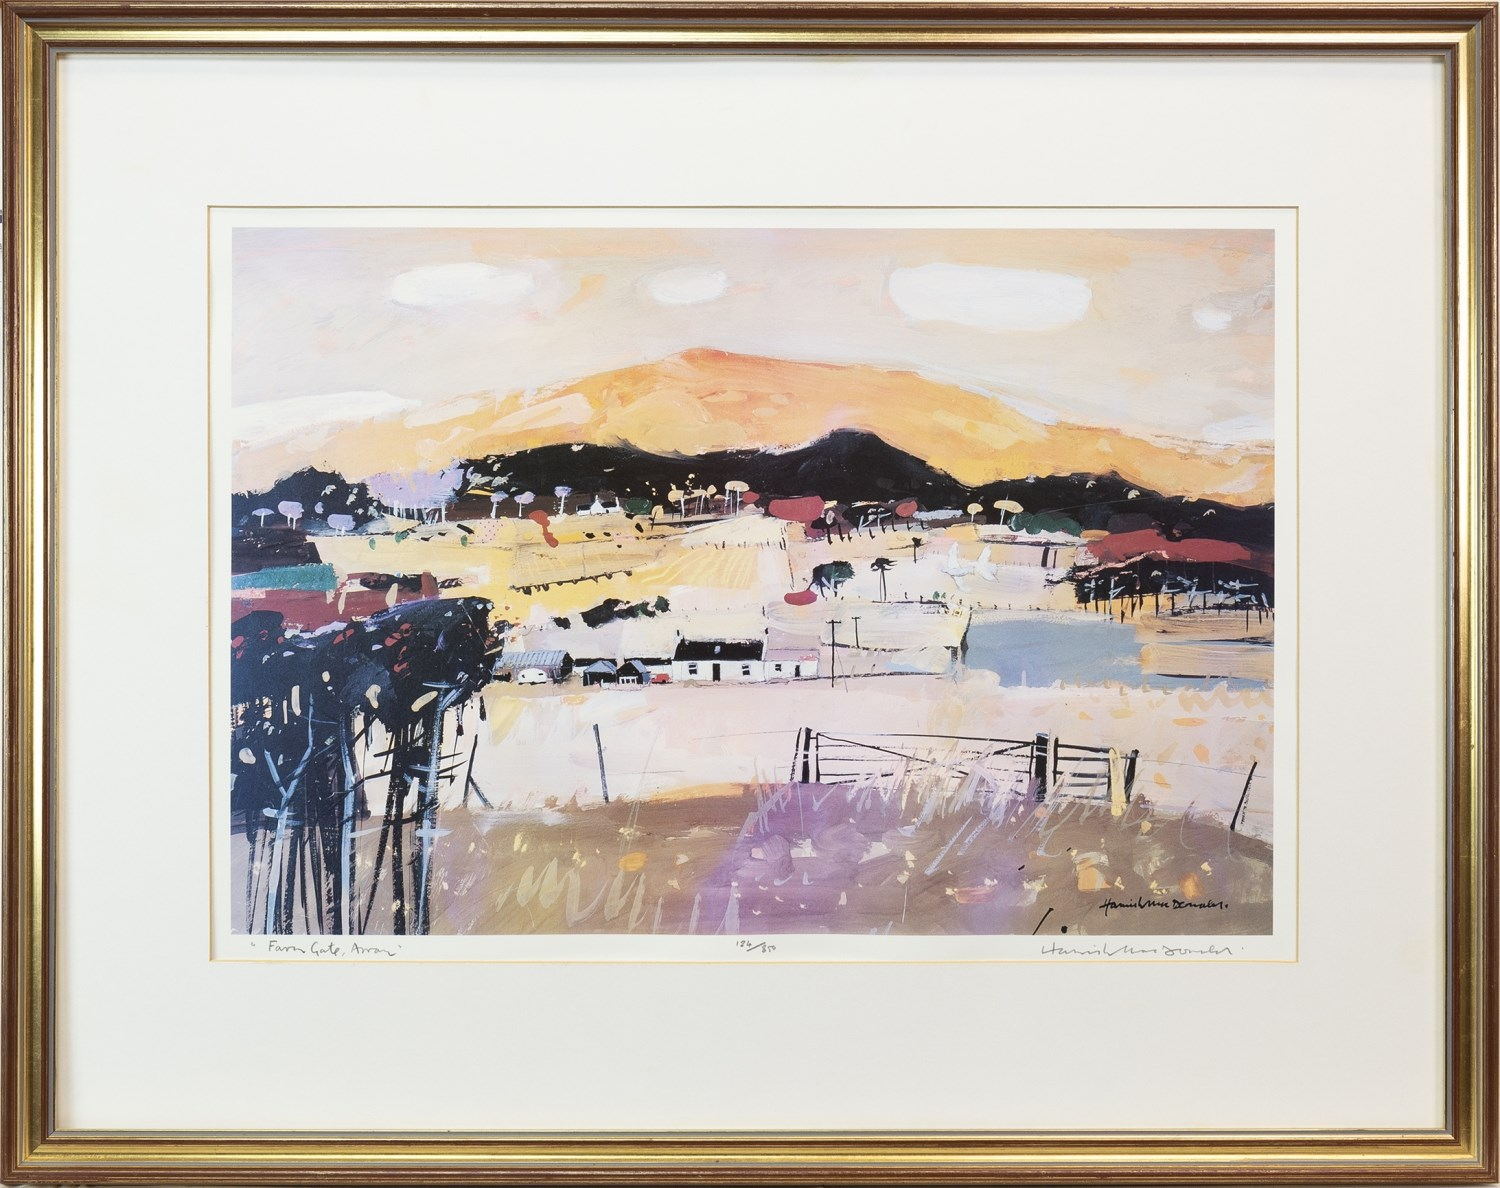 Lot 54 - FARM GATE, ARRAN, A LIMITED EDITION LITHOGRAPHIC PRINT BY HAMISH MACDONALD